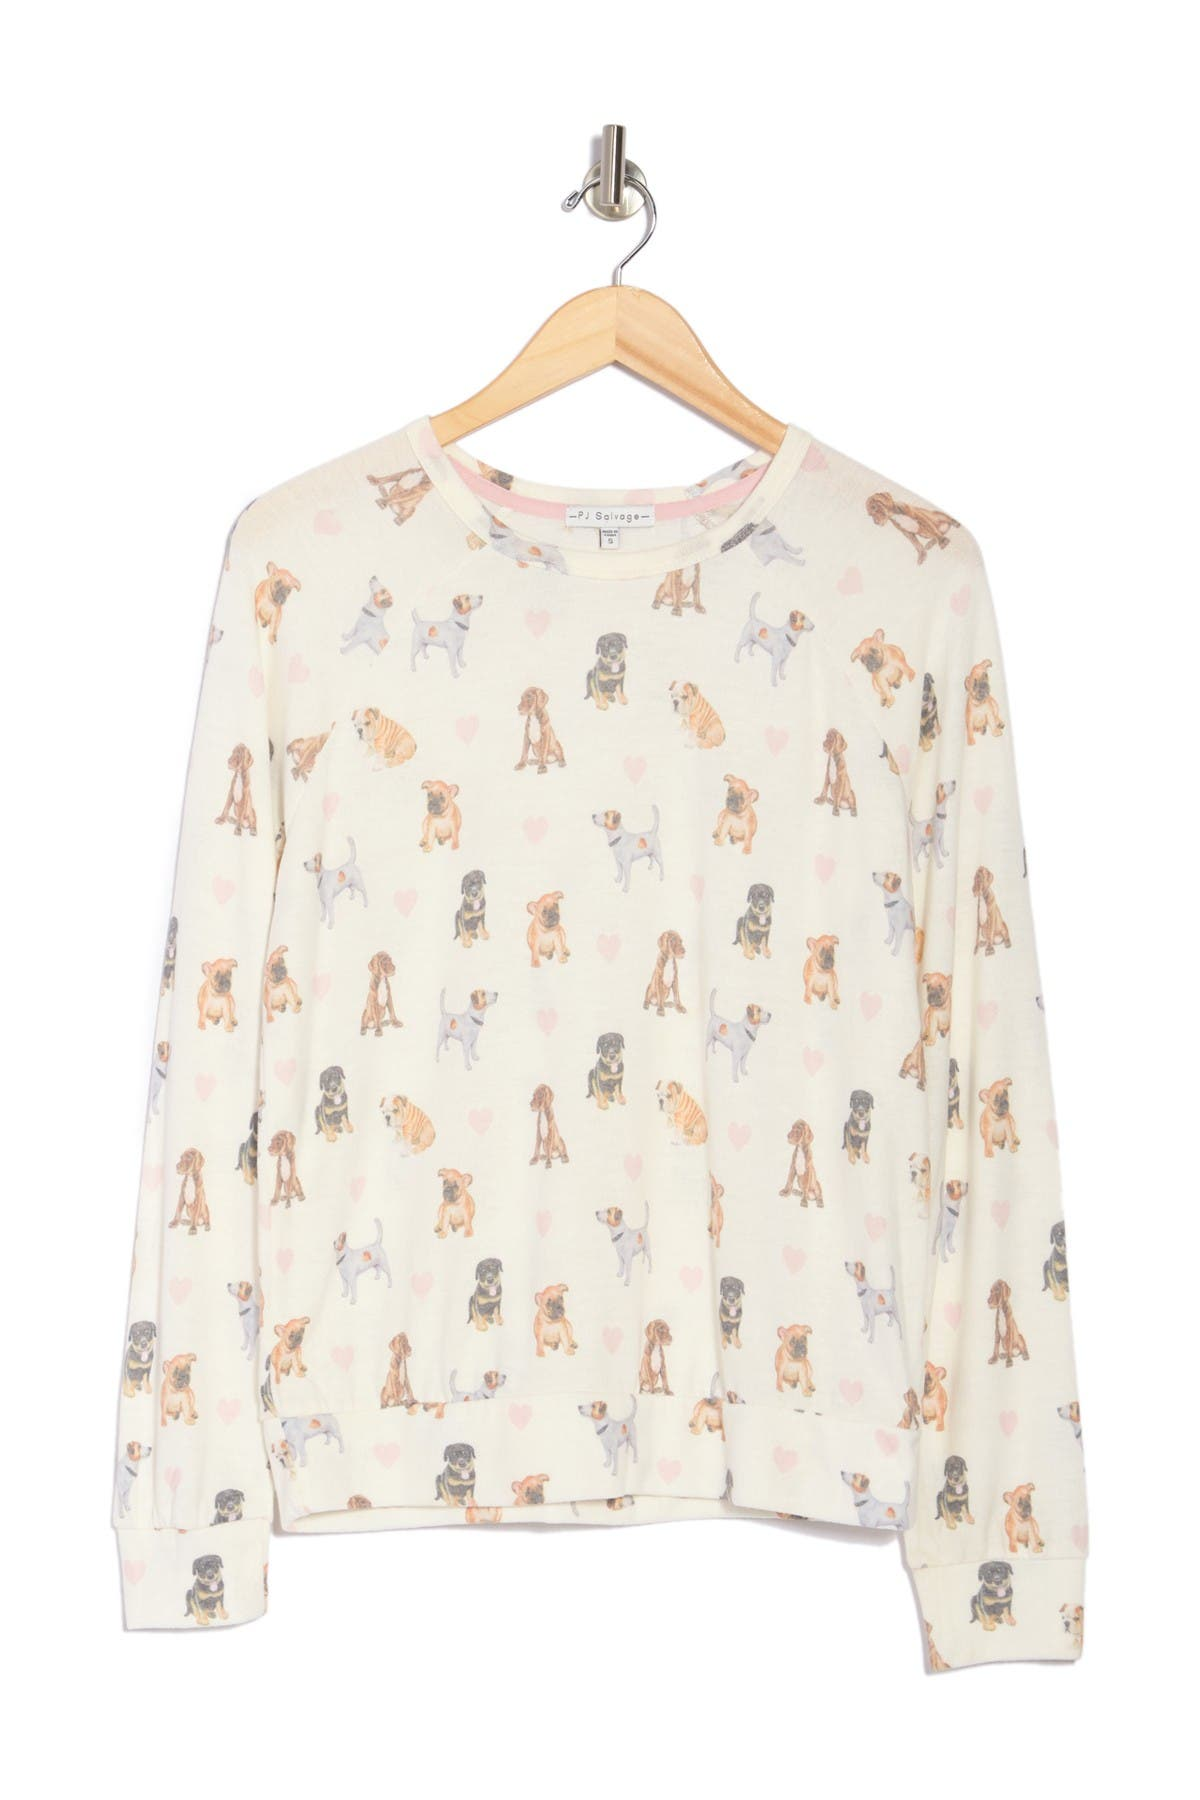 Pj Salvage Long Sleeve Printed Top In Ivory